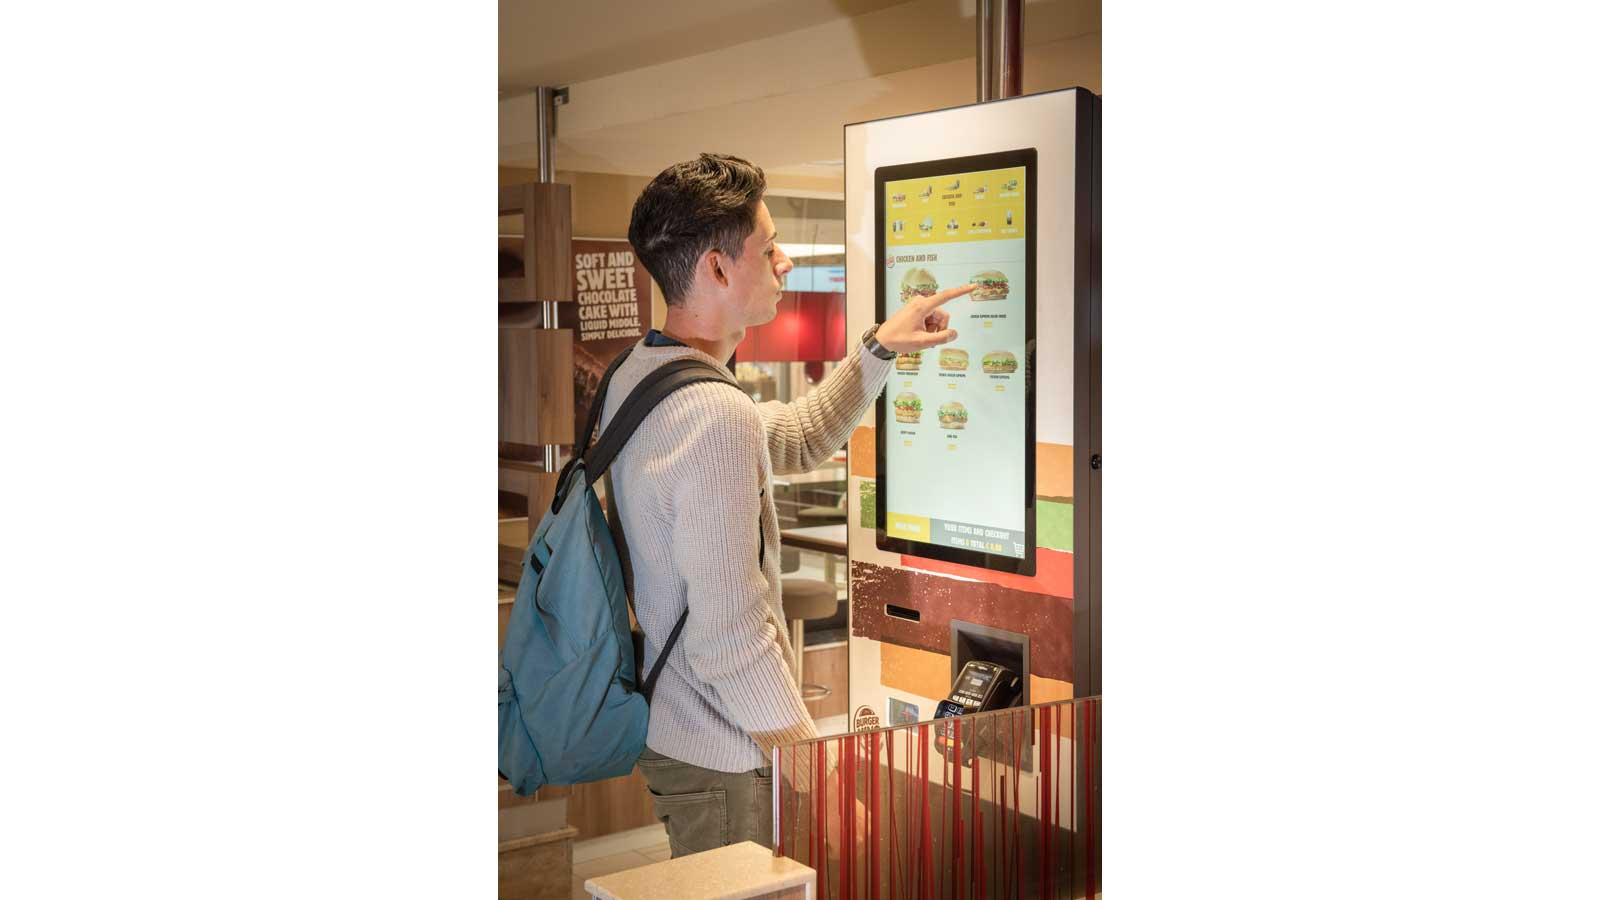 Burger King Malta launches self-ordering kiosks